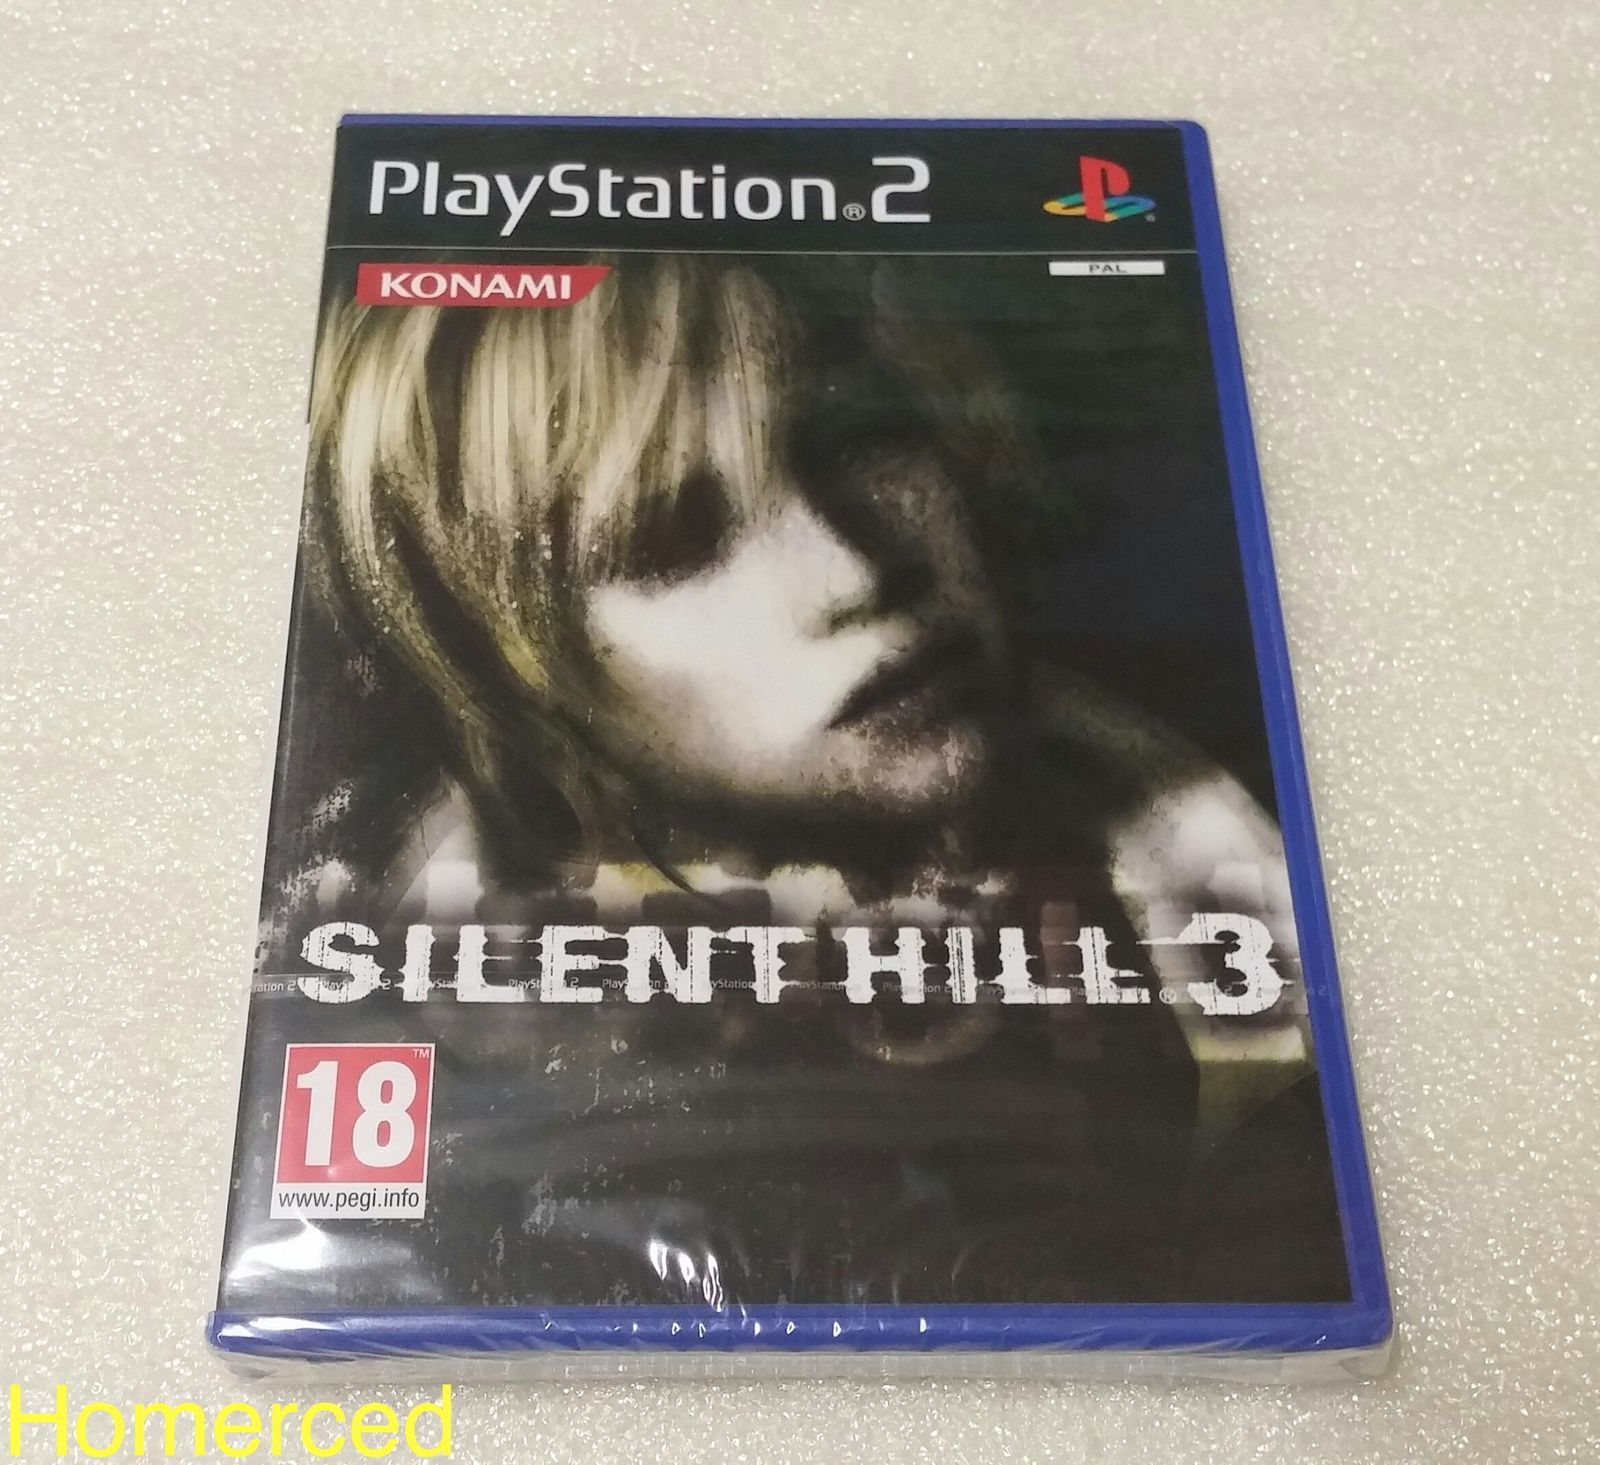 (Arrivage) Silent Hill 3 PS2 neuf sous blister